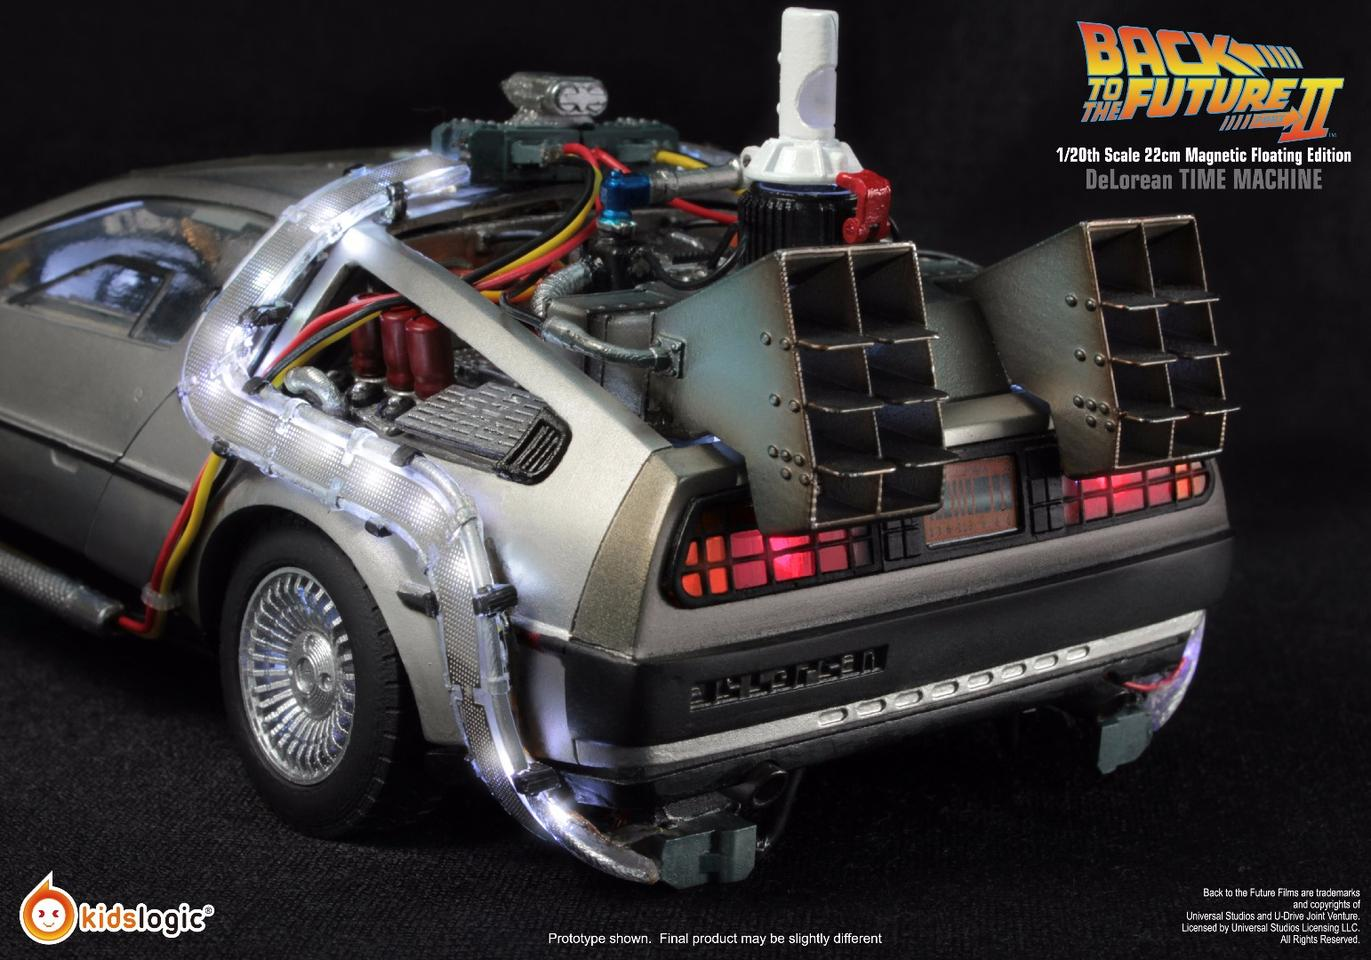 A rear view of the scale model replica of the Back the the Future II hovering DeLorean